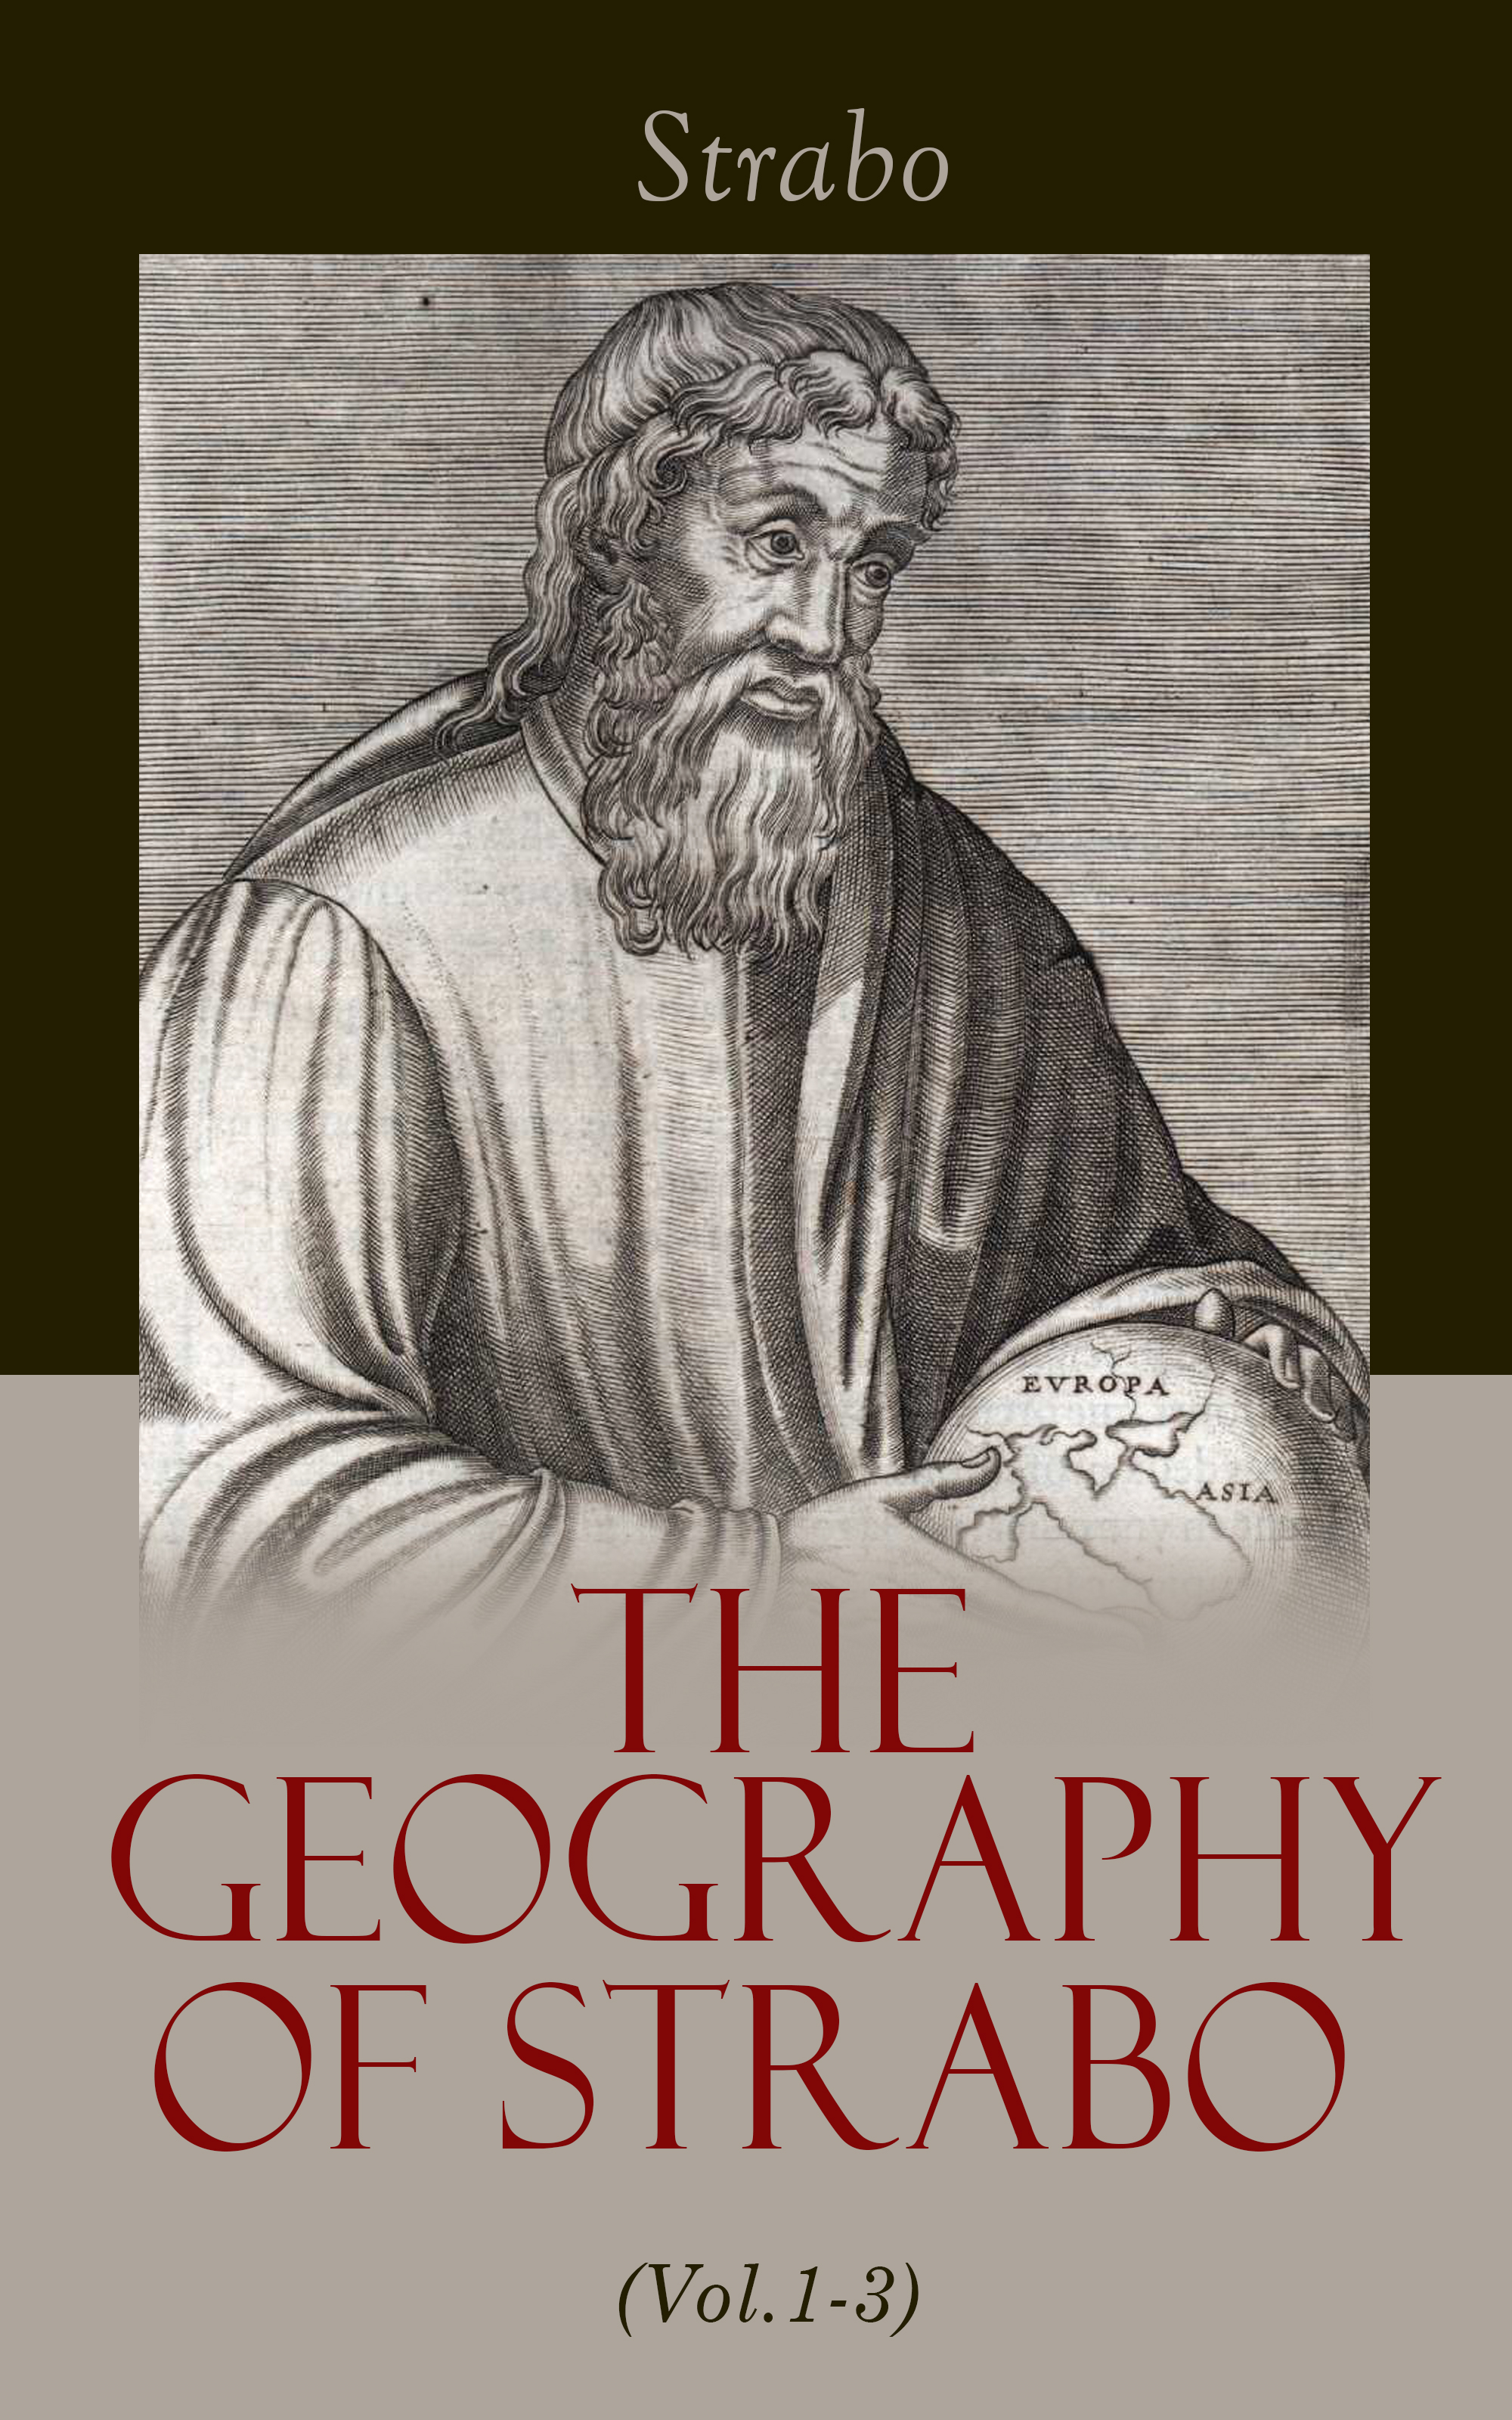 Strabo The Geography of Strabo (Vol.1-3) luban mirror kenneth carpenter family secret wing of the carpenter civil astrology feng shui secret of this geography books